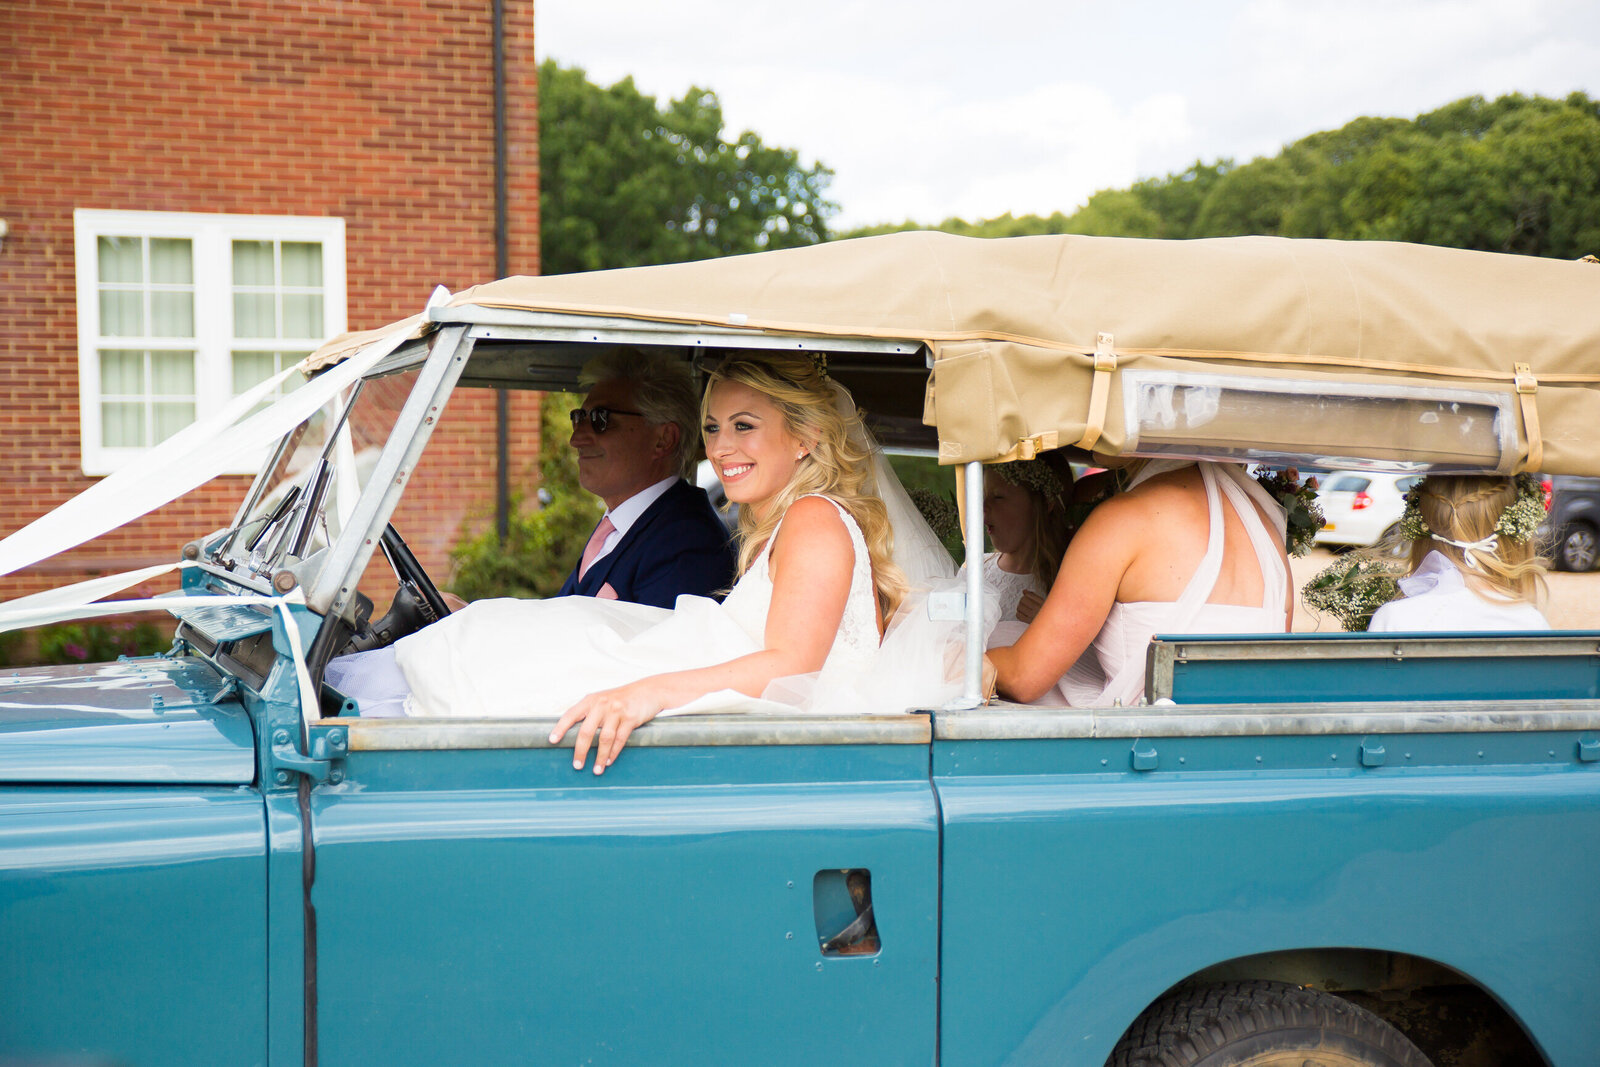 Wedding photography of a bride in a car on her way to get married at Highfield School Capel in Surrey. Photography by Lynsey Grace Photography.